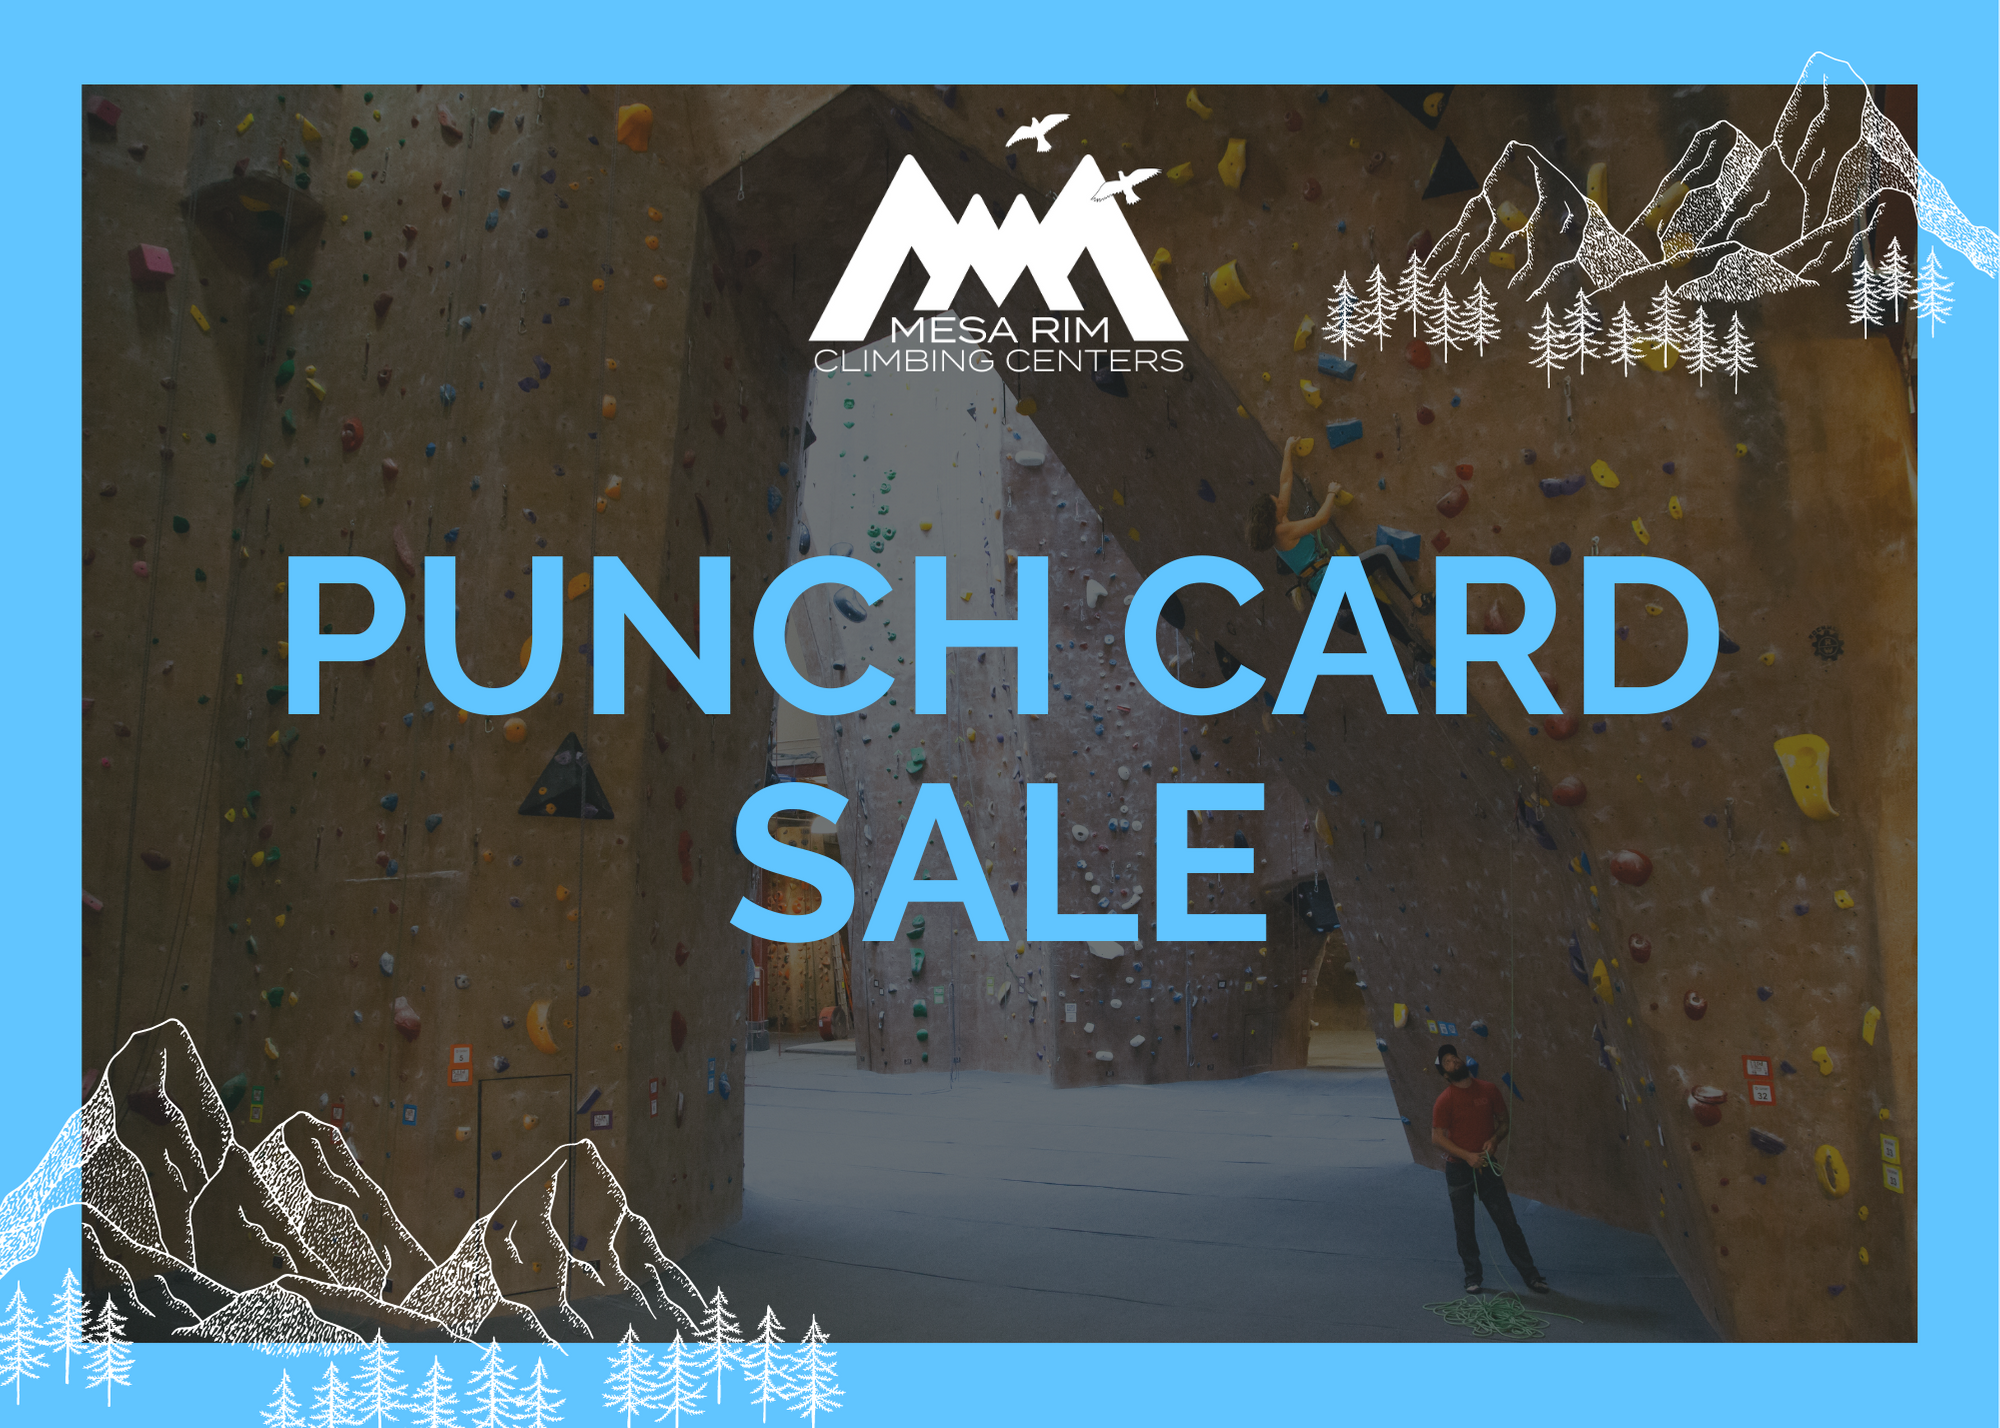 Punchcard Sale